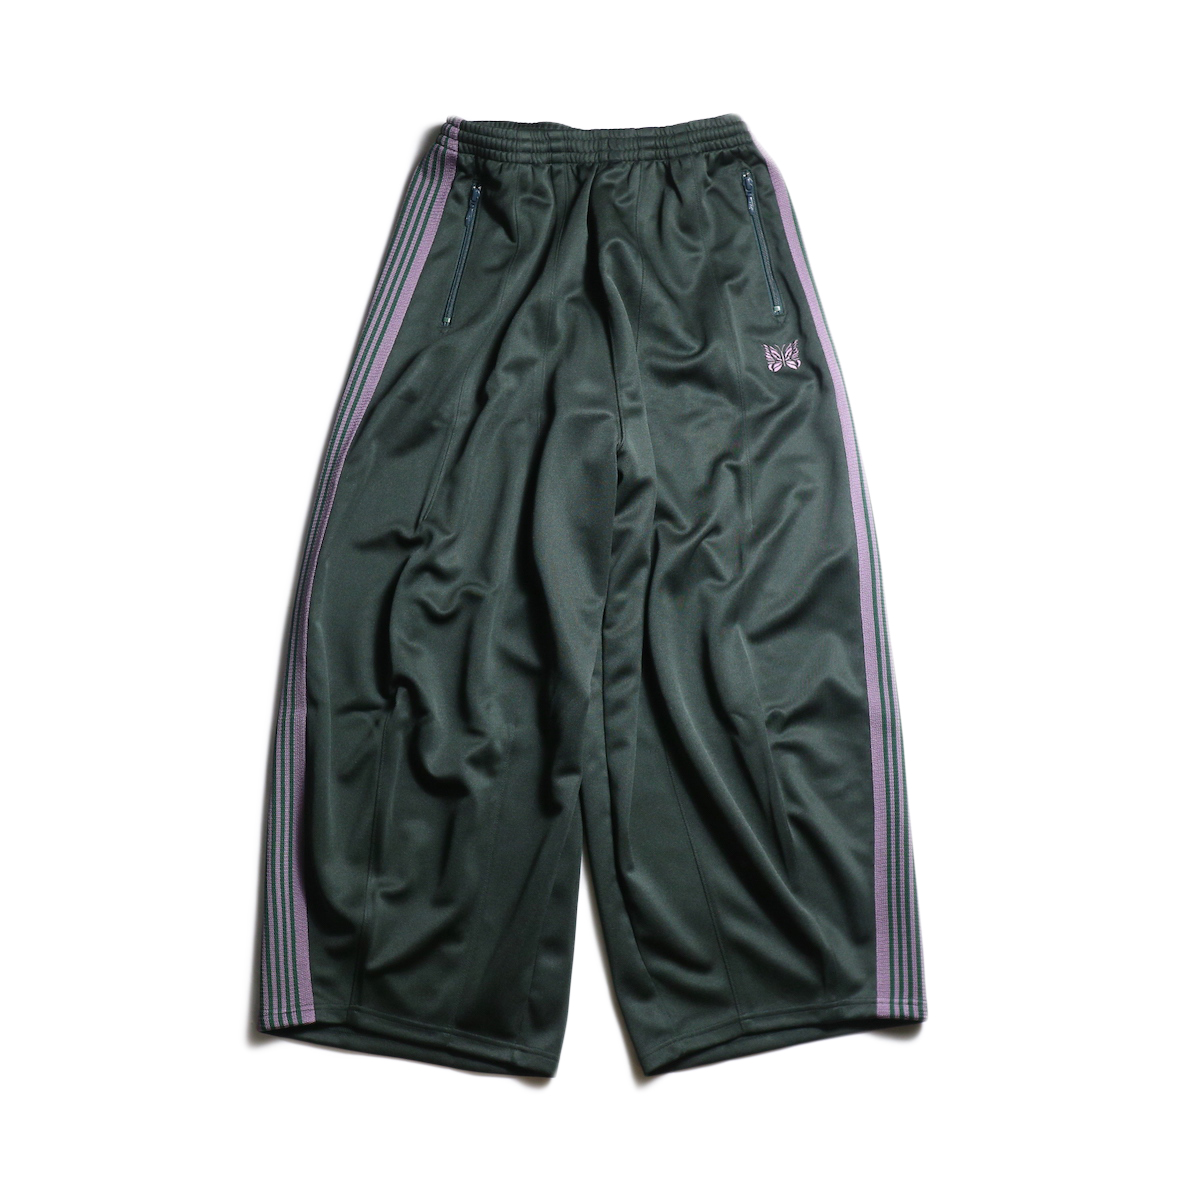 Needles / H.D. TRACK PANT - POLY SMOOTH (Green)